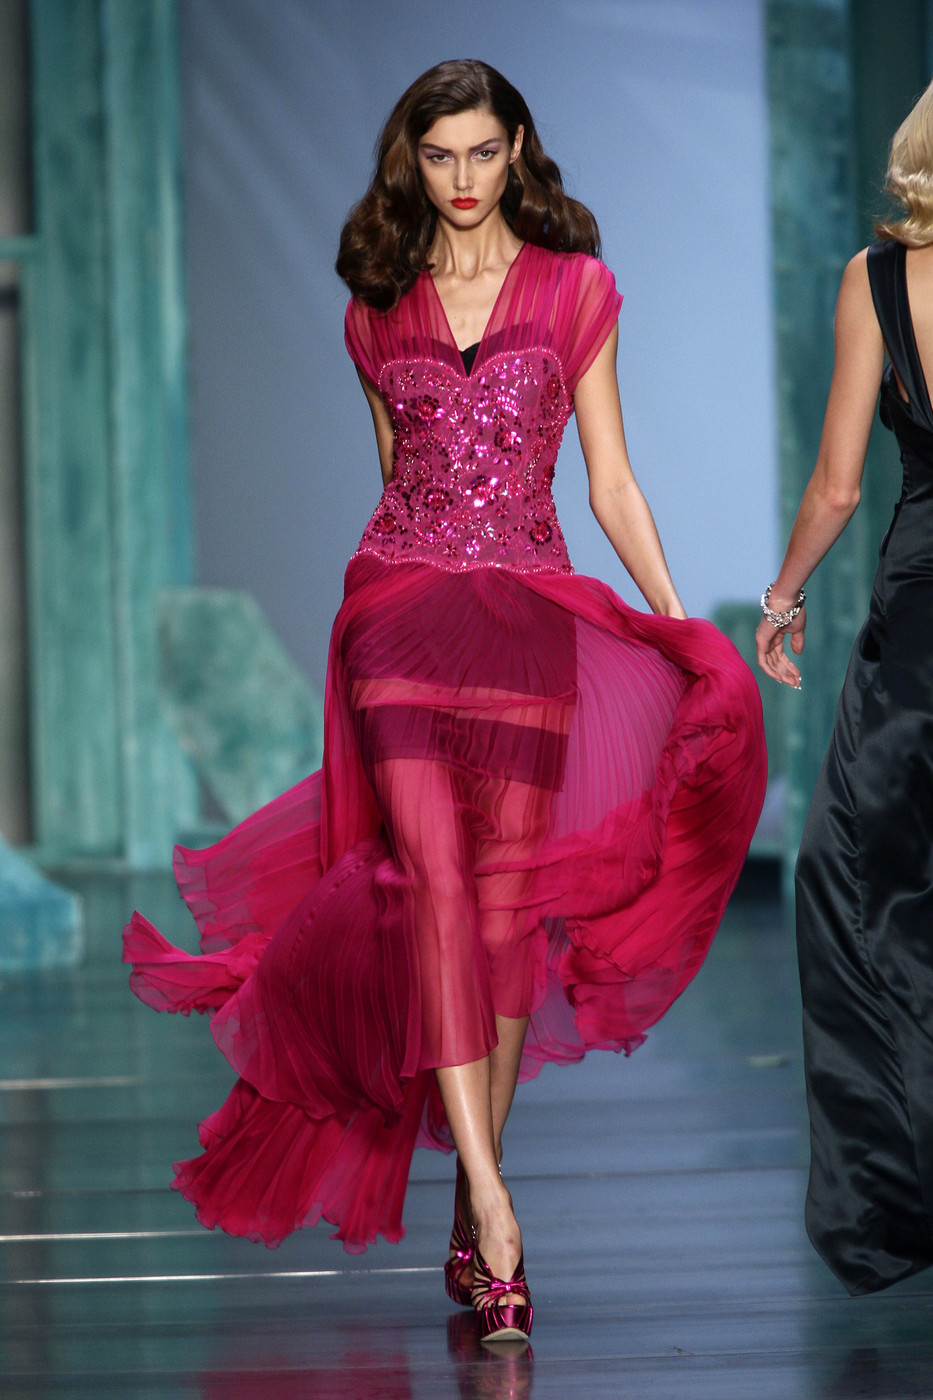 via fashioned by love | John Galliano Christian Dior RTW Spring 2010